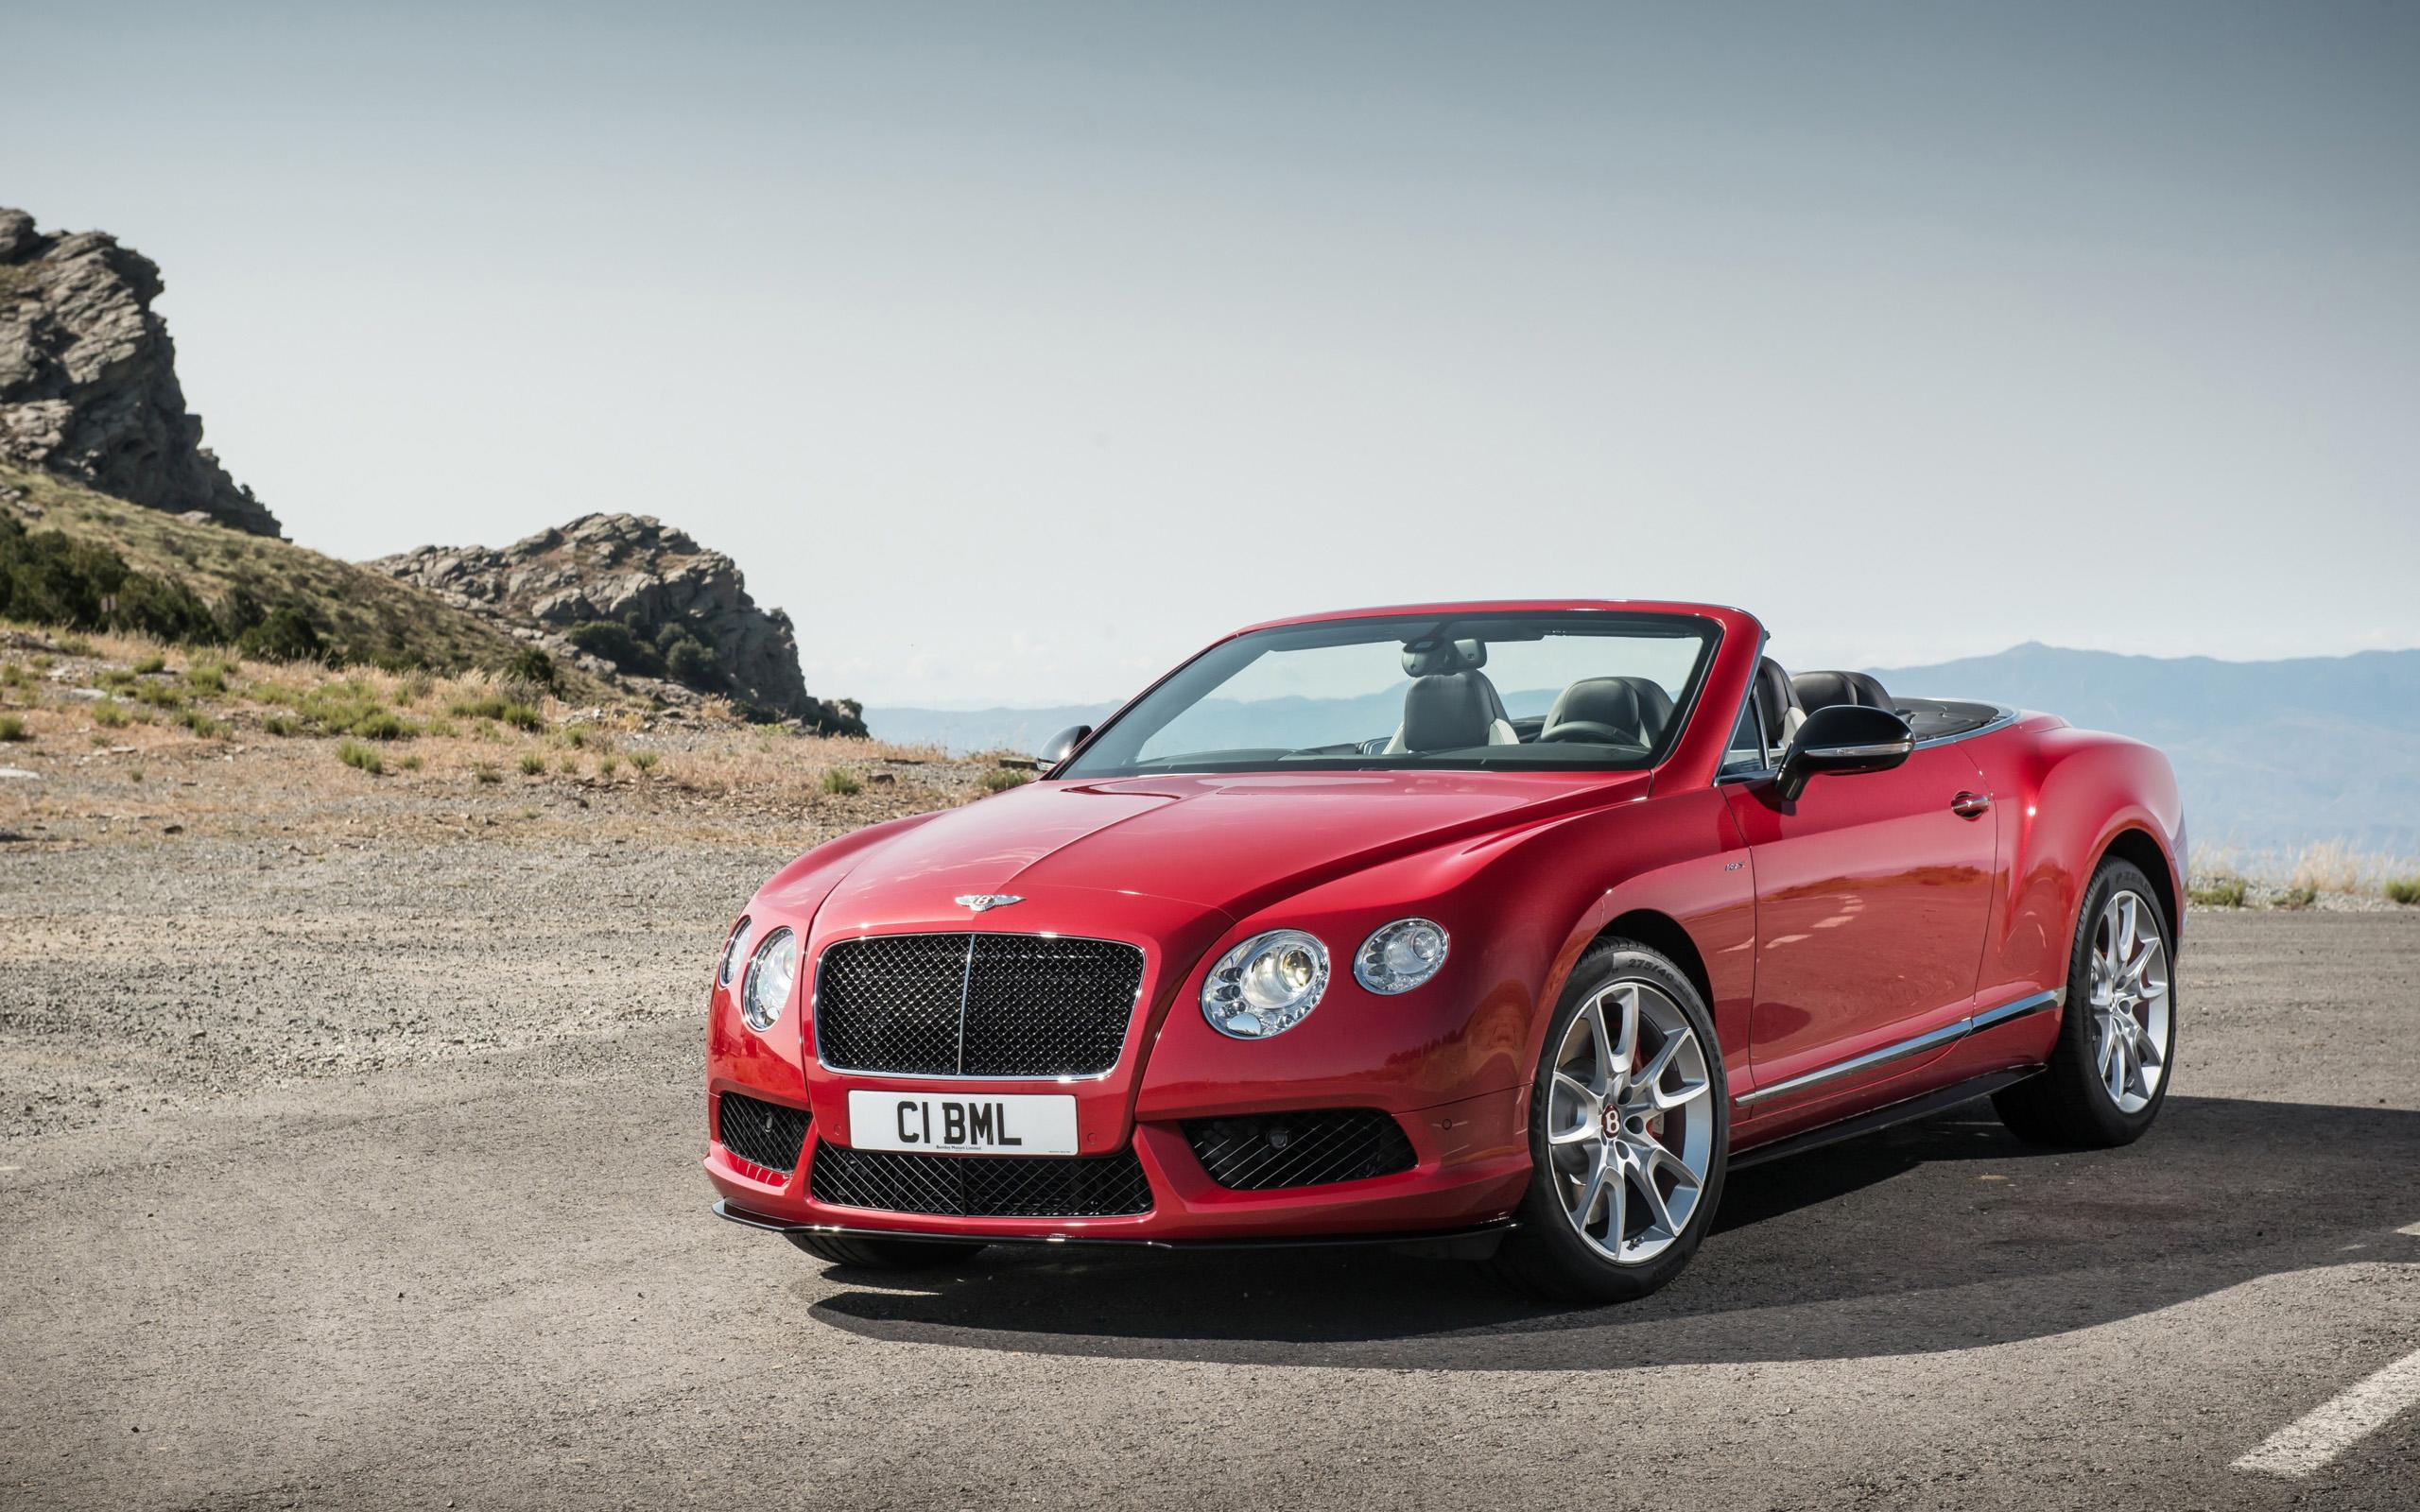 2014 Bentley Continental GT V8 S Convertible Wallpapers